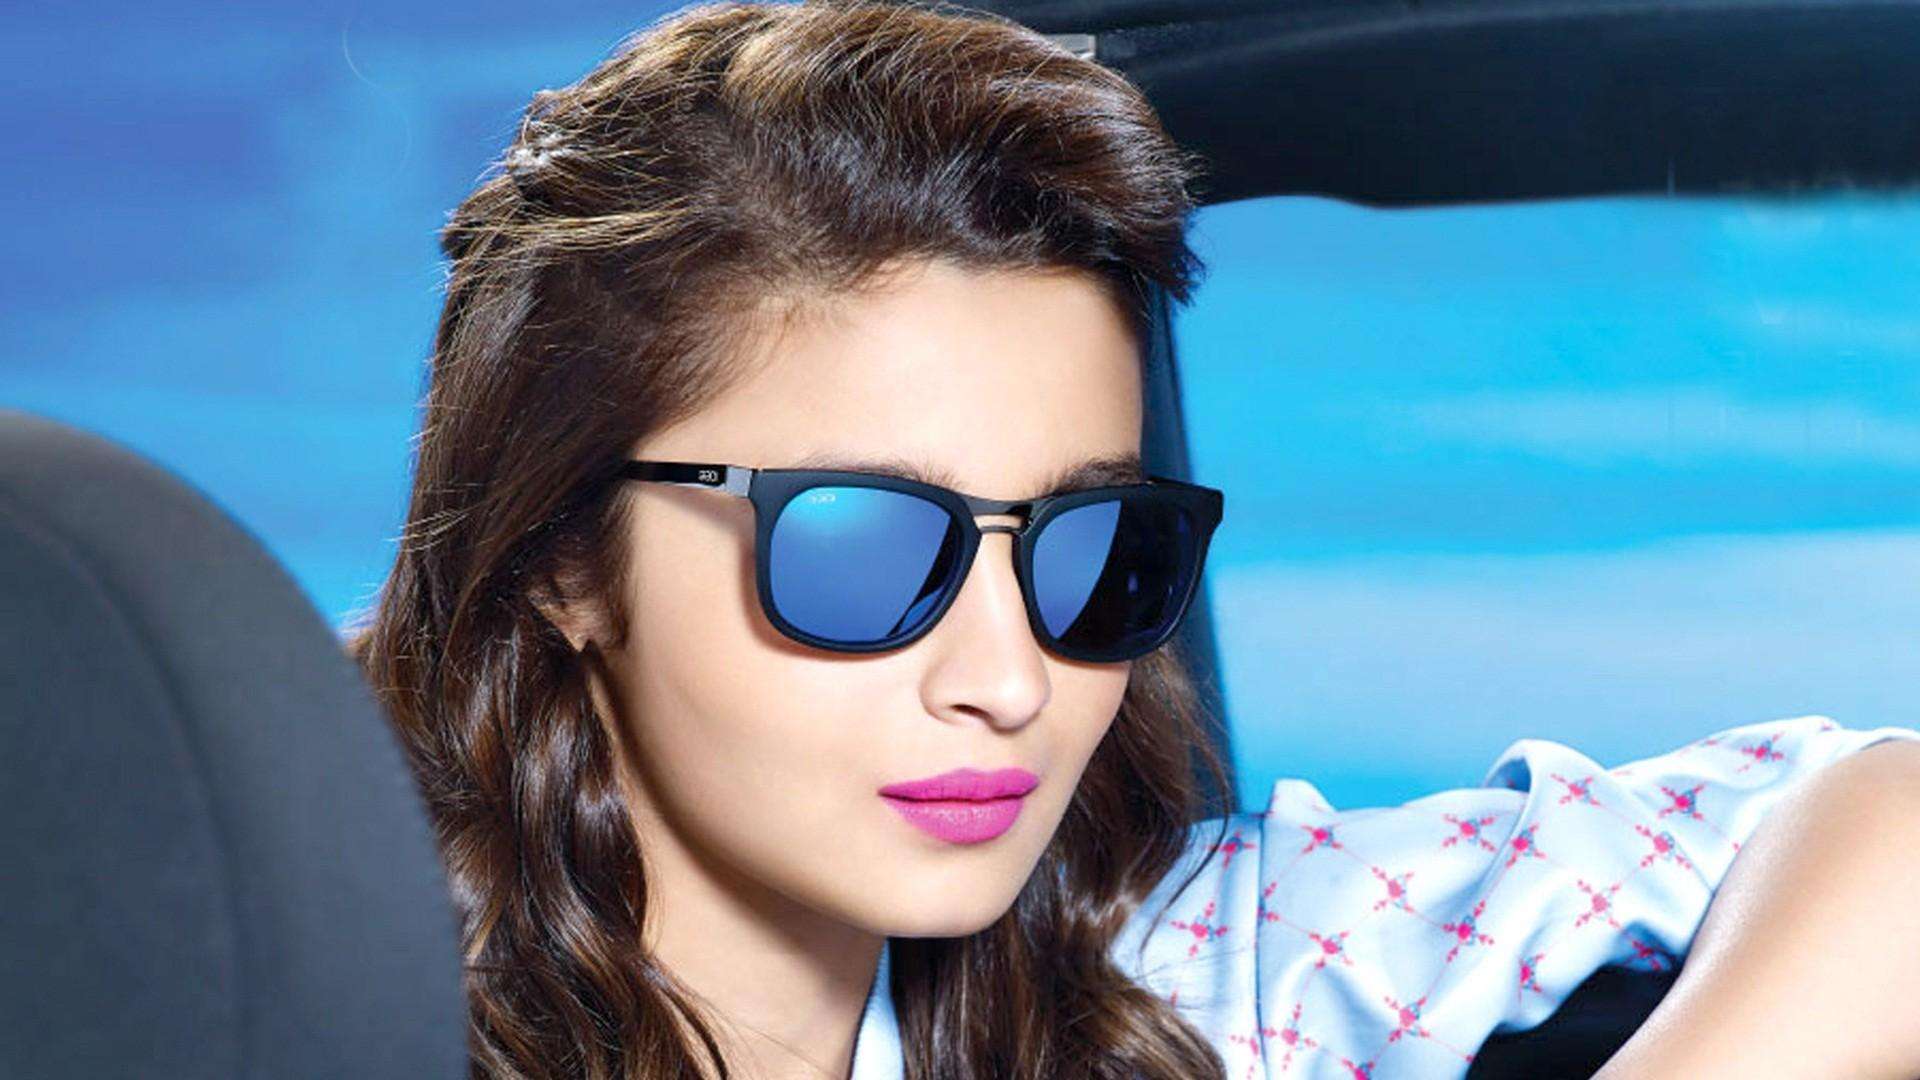 alia bhatt wallpapers, images, backgrounds, photos and pictures